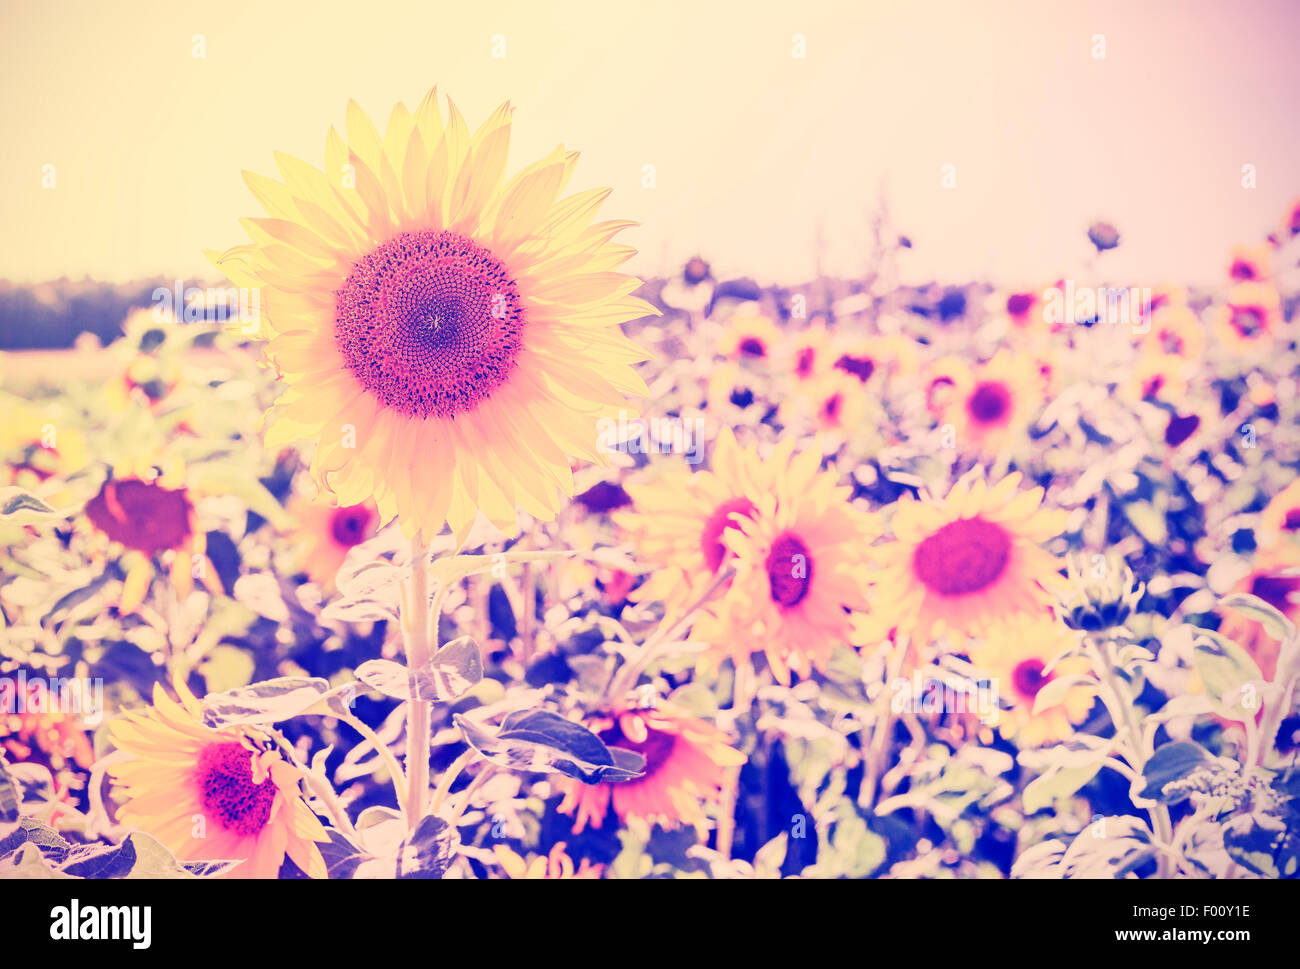 Vintage toned sunflowers, nature background. - Stock Image